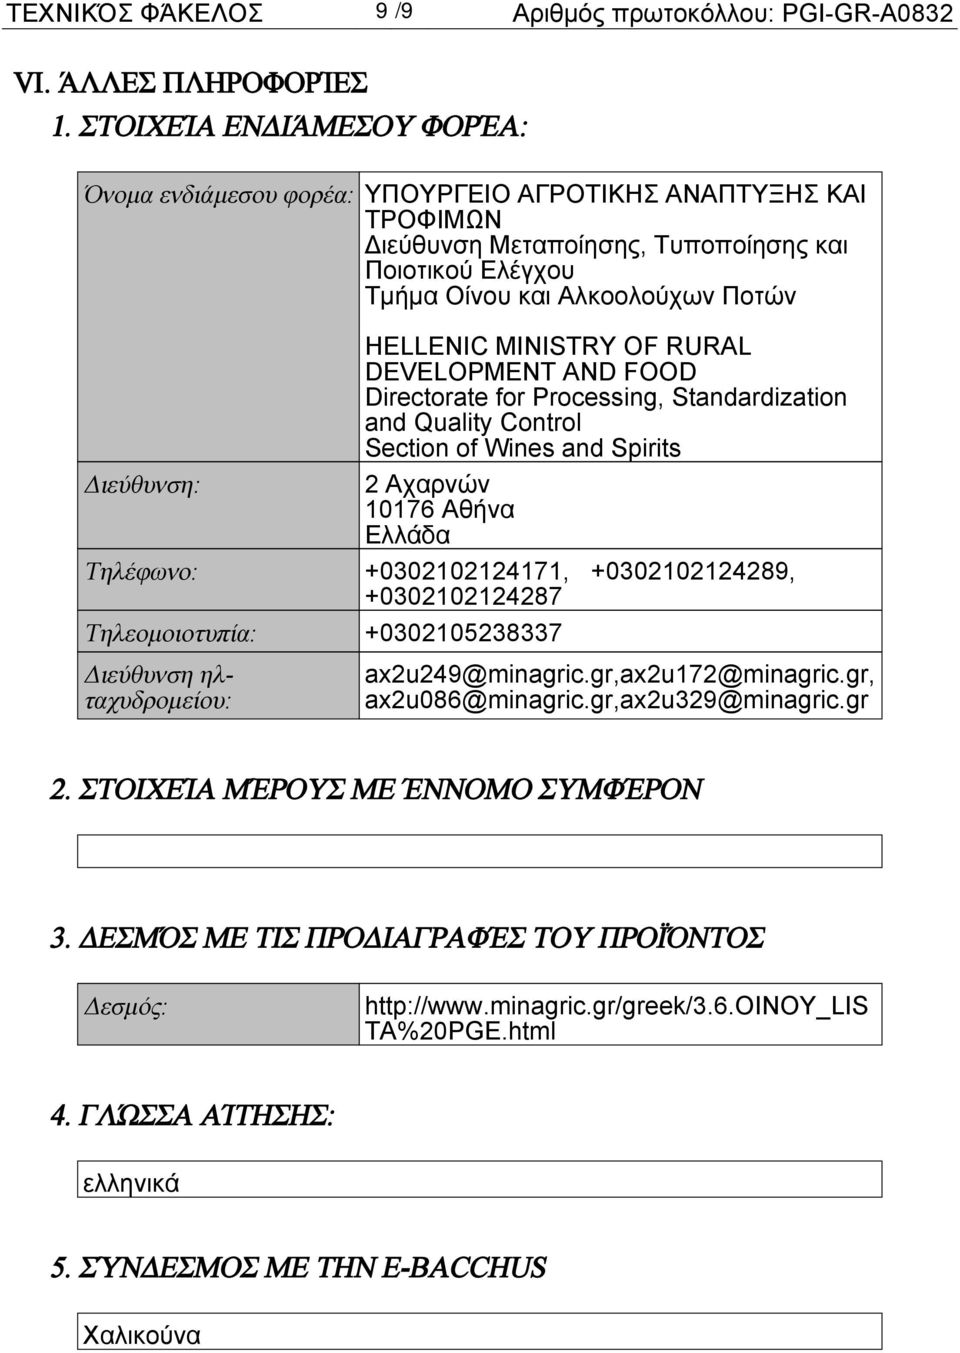 MINISTRY OF RURAL DEVELOPMENT AND FOOD Directorate for Processing, Standardization and Quality Control Section of Wines and Spirits Διεύθυνση: 2 Αχαρνών 10176 Αθήνα Ελλάδα Τηλέφωνο: +0302102124171,